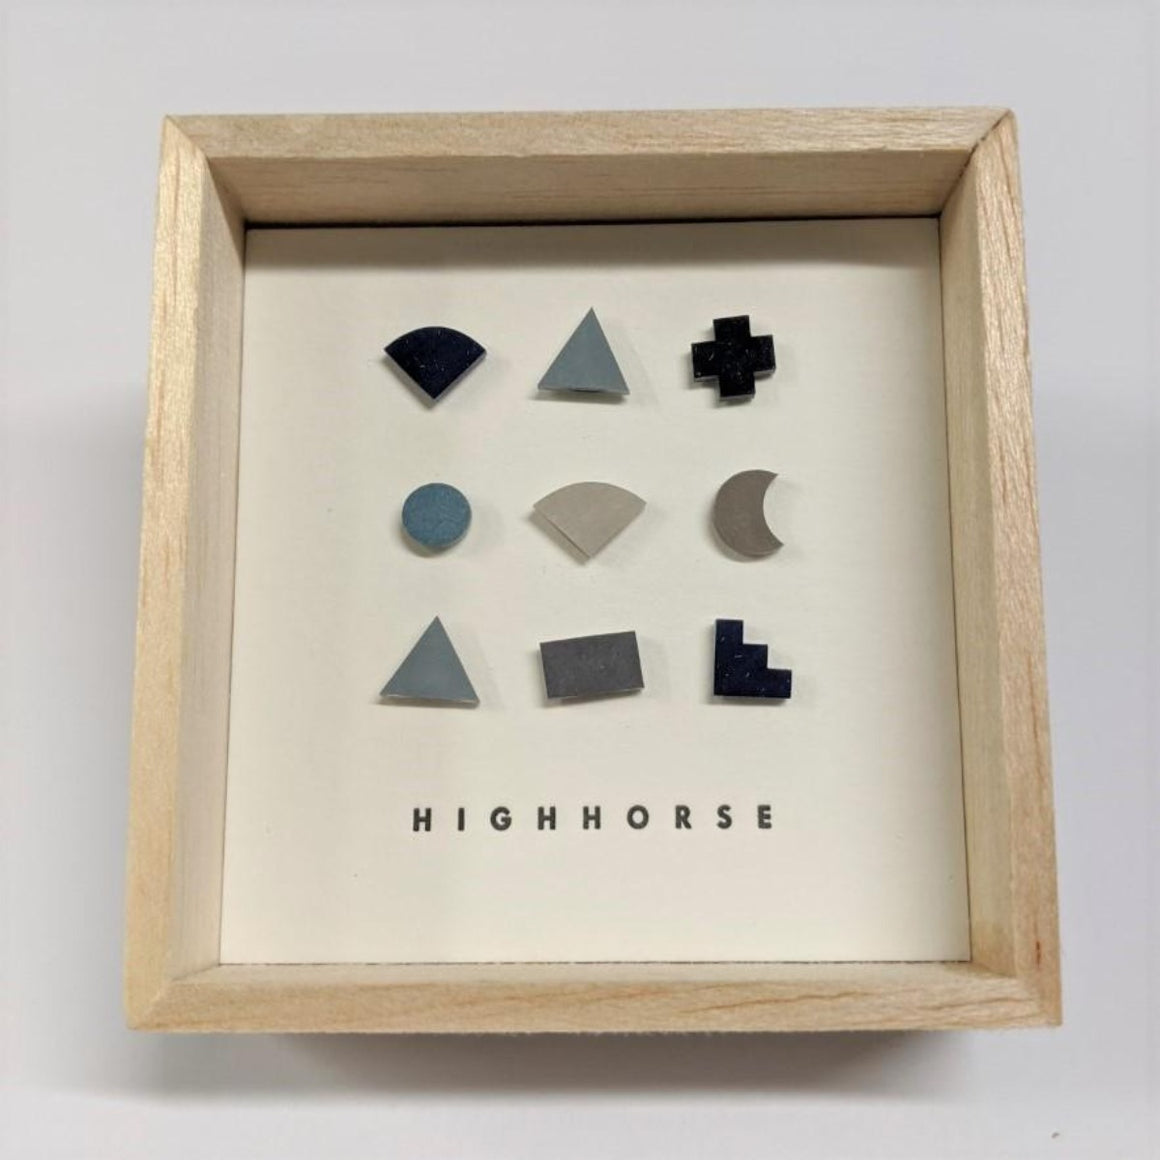 Timber box featuring earring studs including a variety of shapes which include colours of black, navy, light blue, grey and light grey